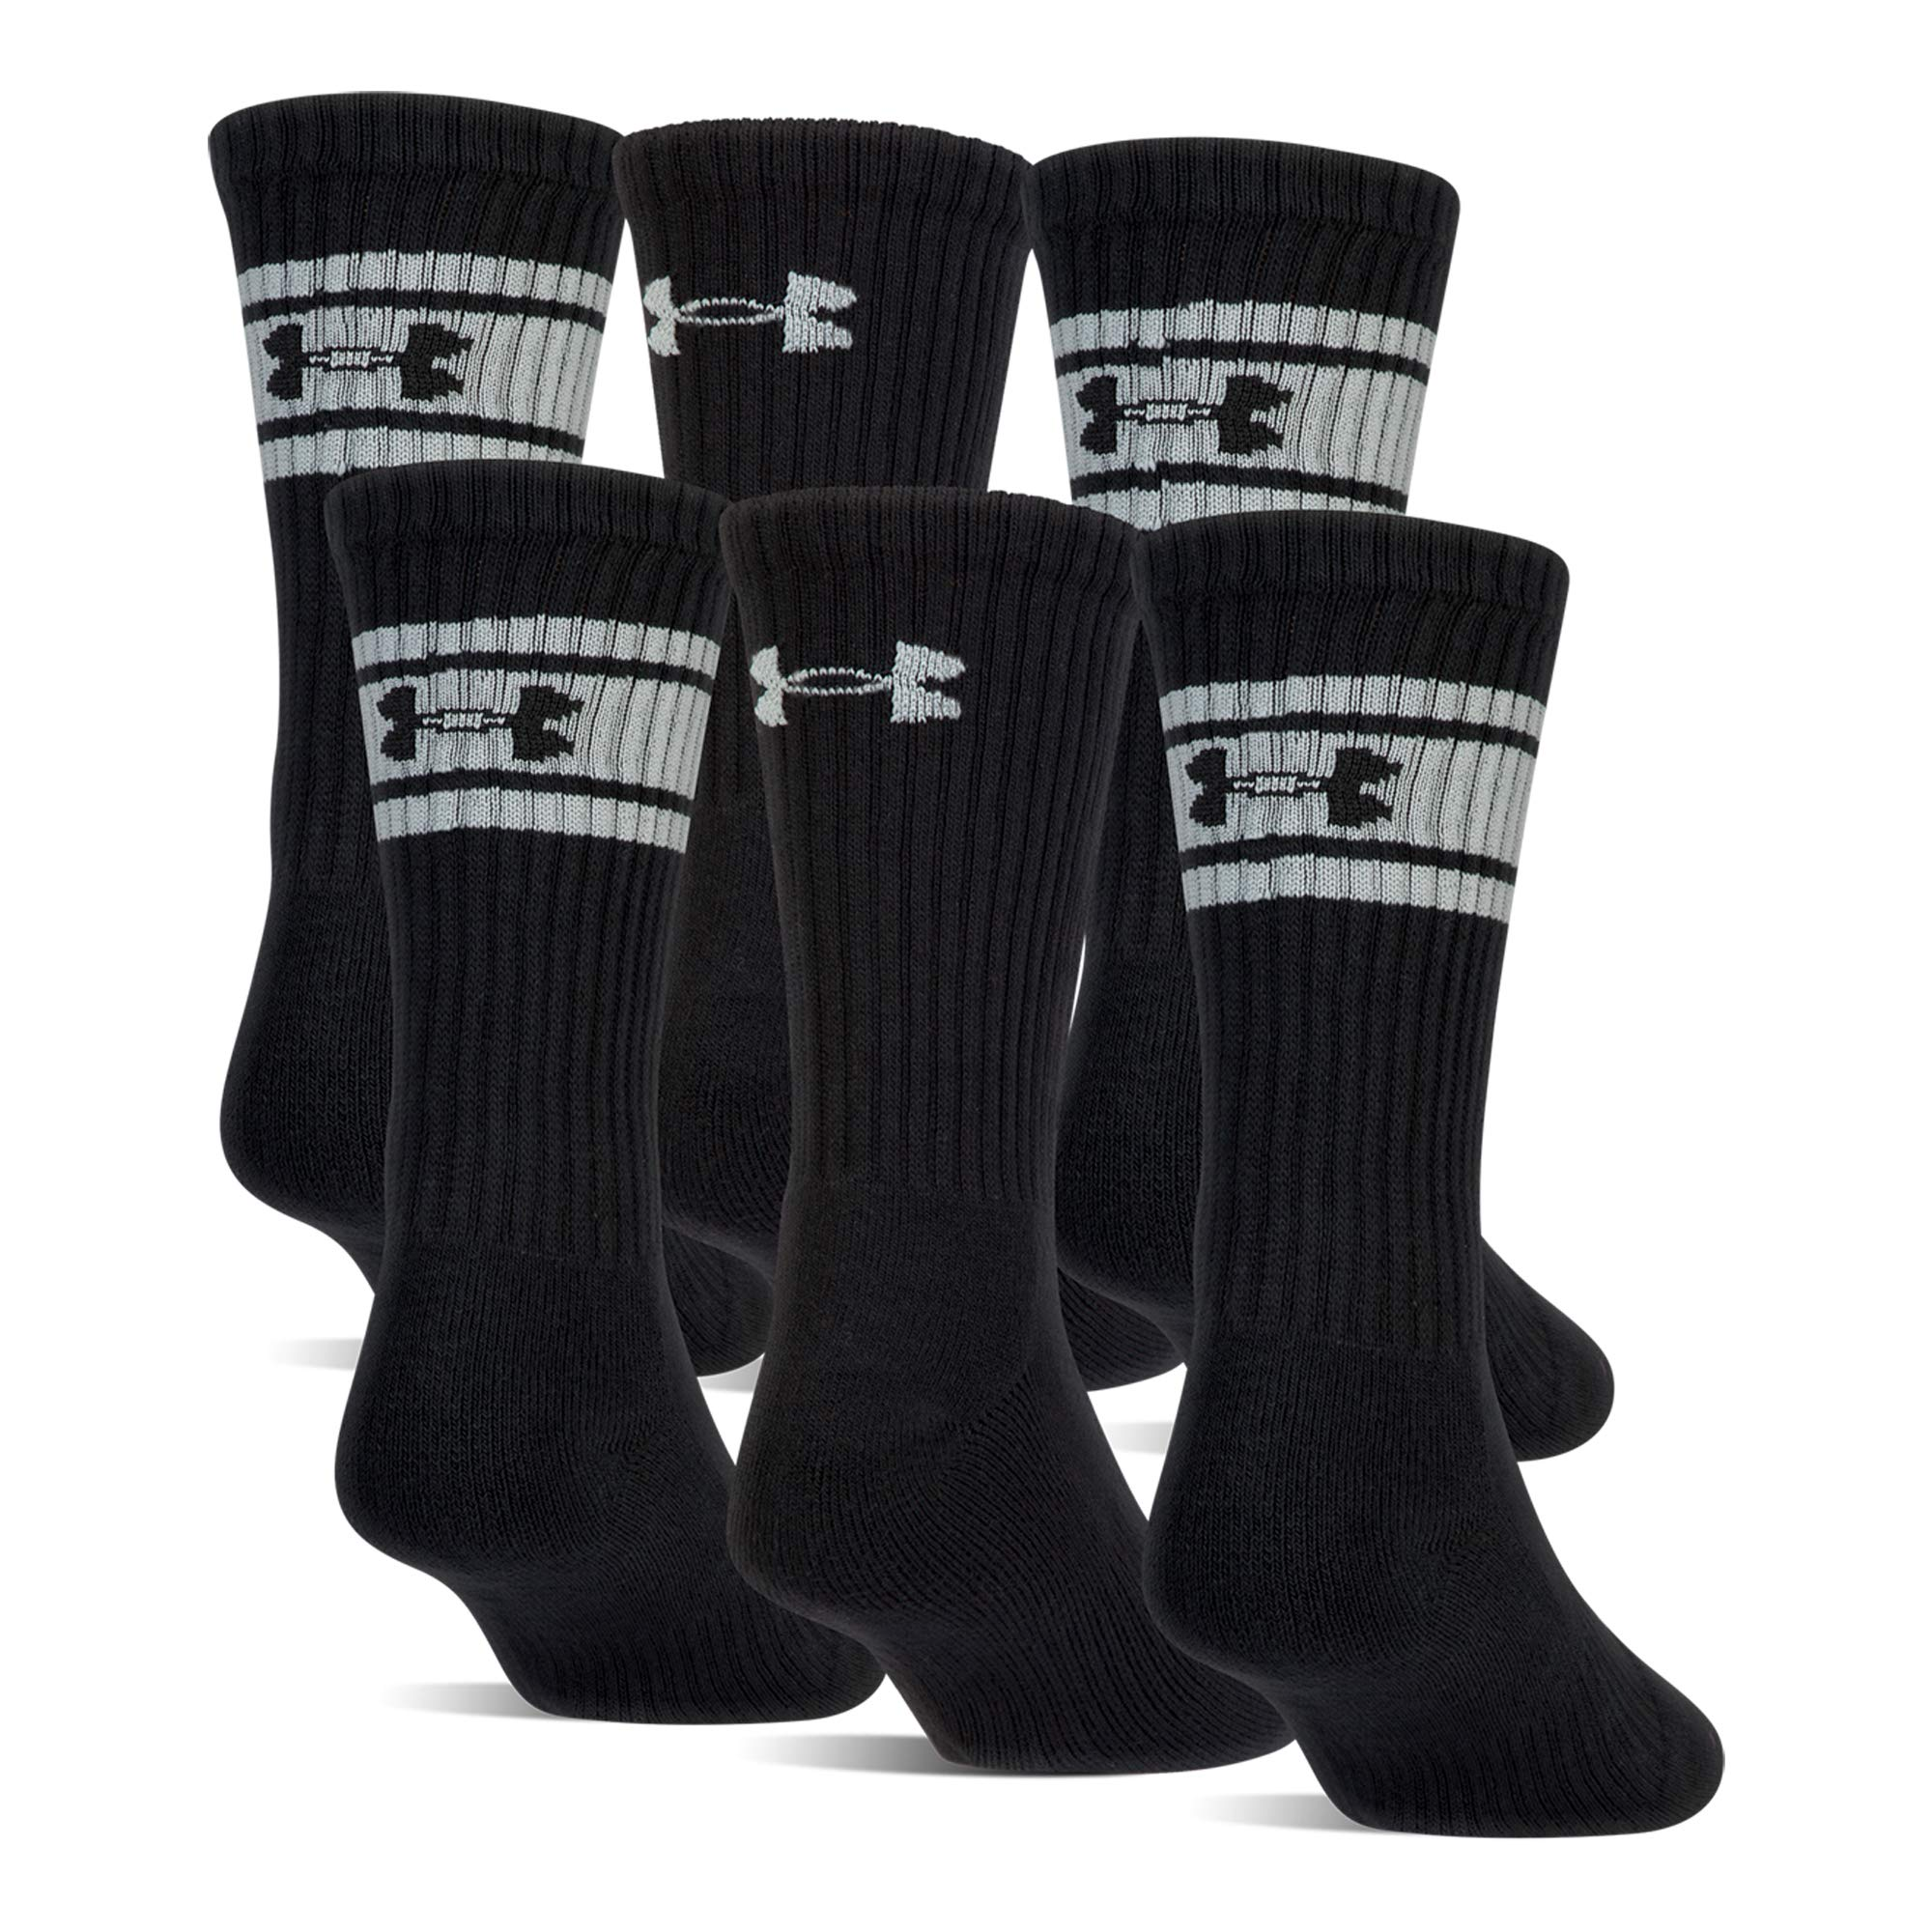 Under Armour Men's Charged Cotton 2.0 Socks, 6-Pair, Black/White, Medium by Under Armour